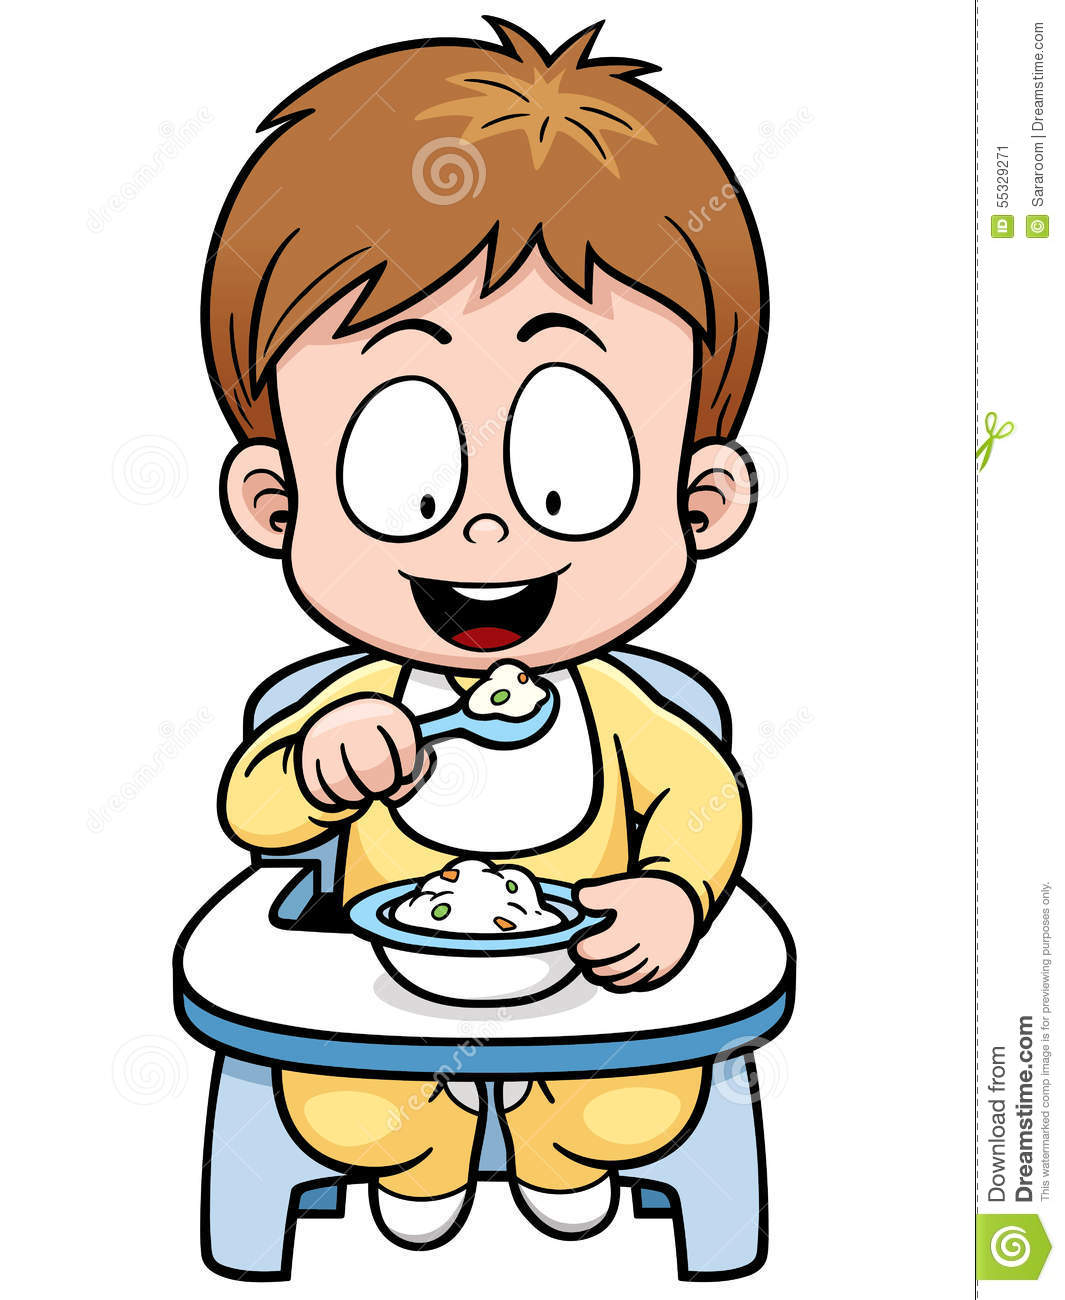 Vector illustration of cartoon baby eating.